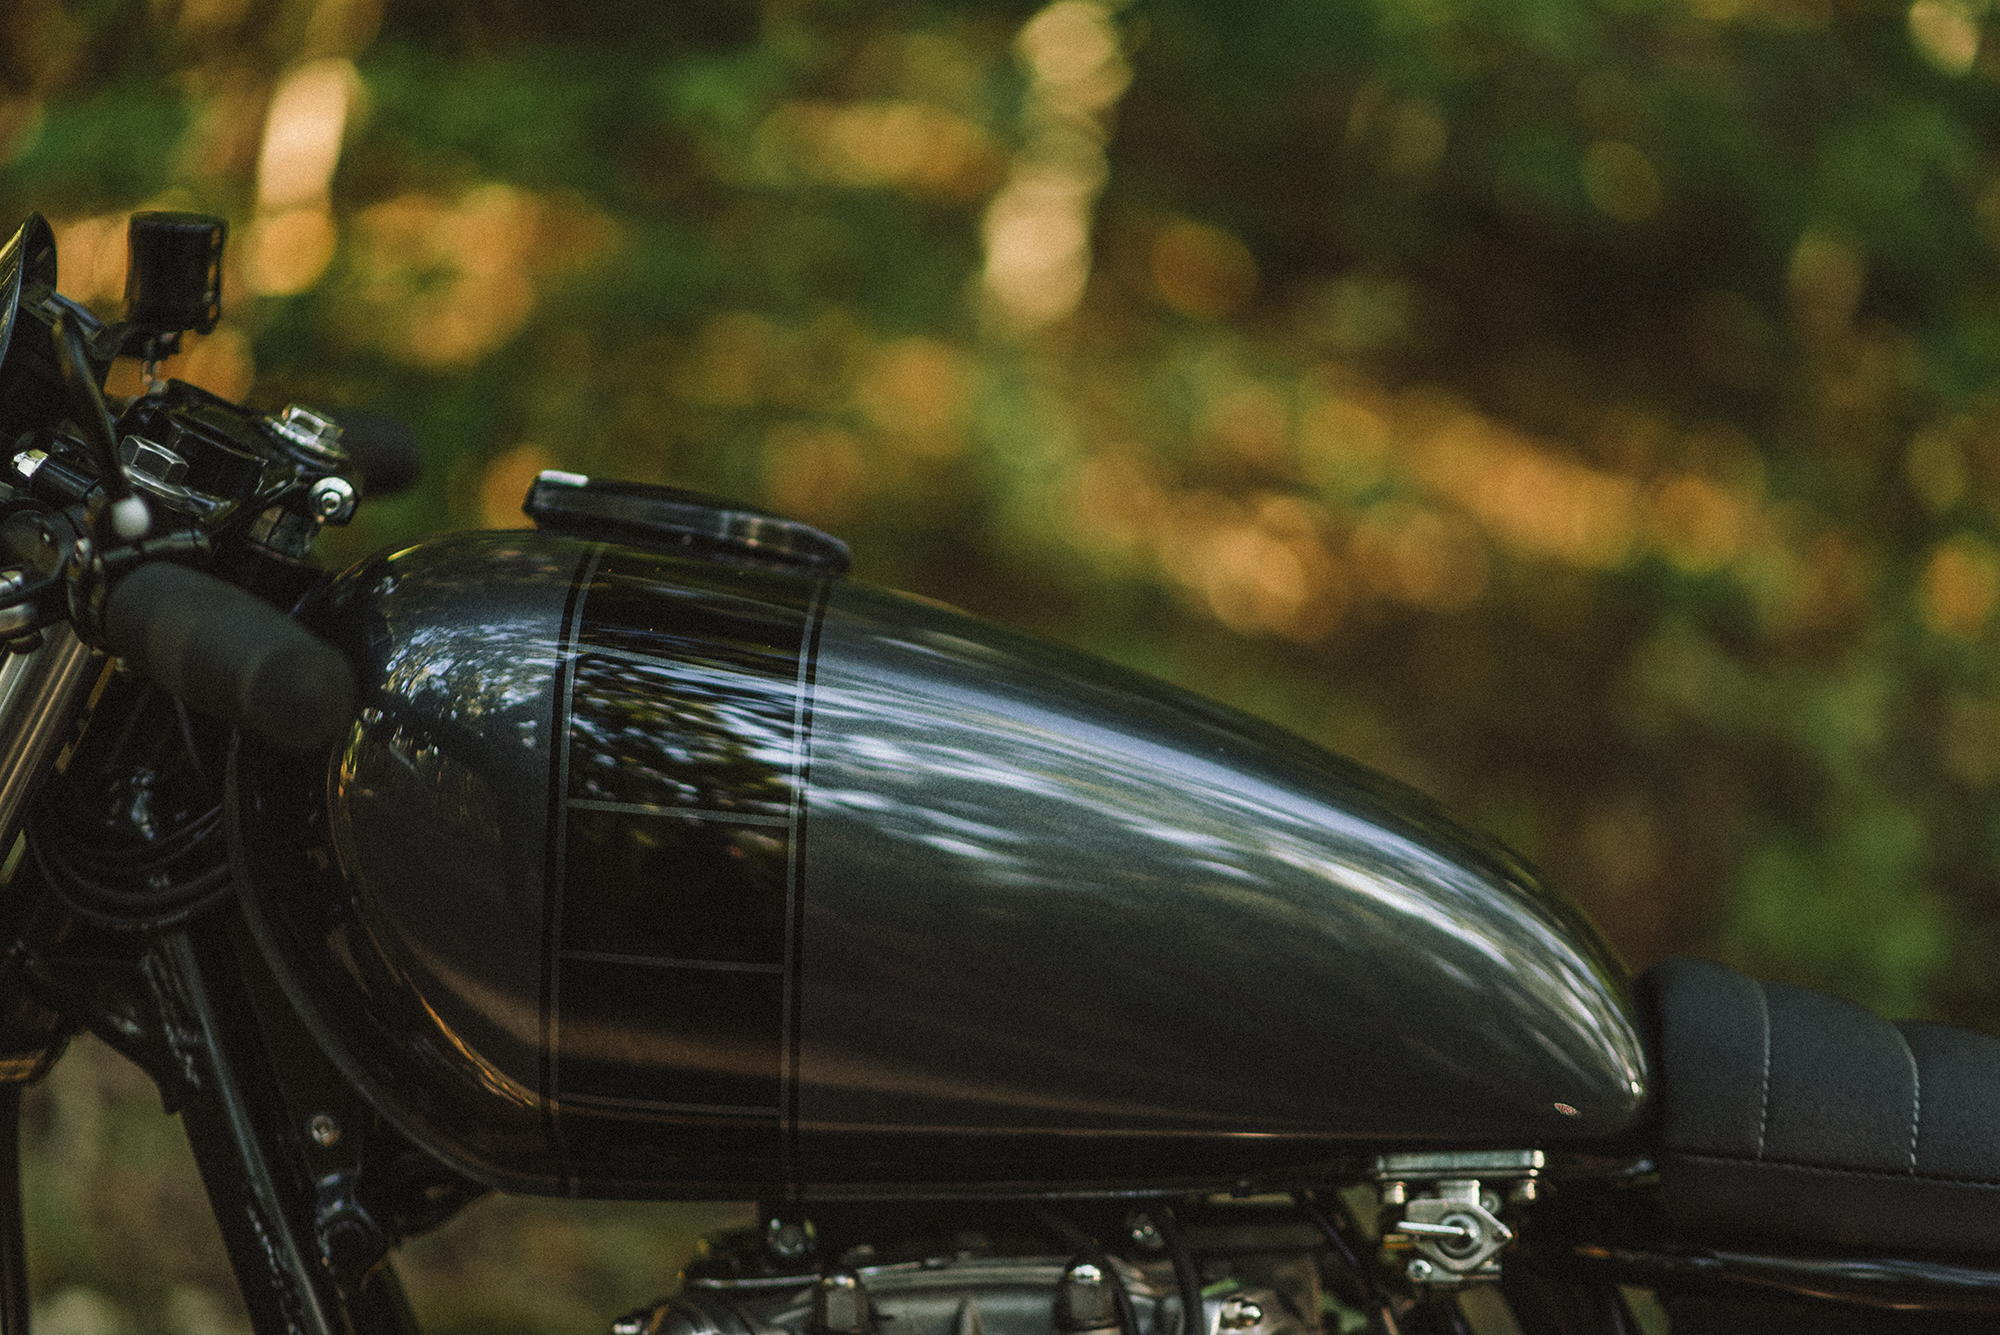 XS650 from Analog Motorcycles